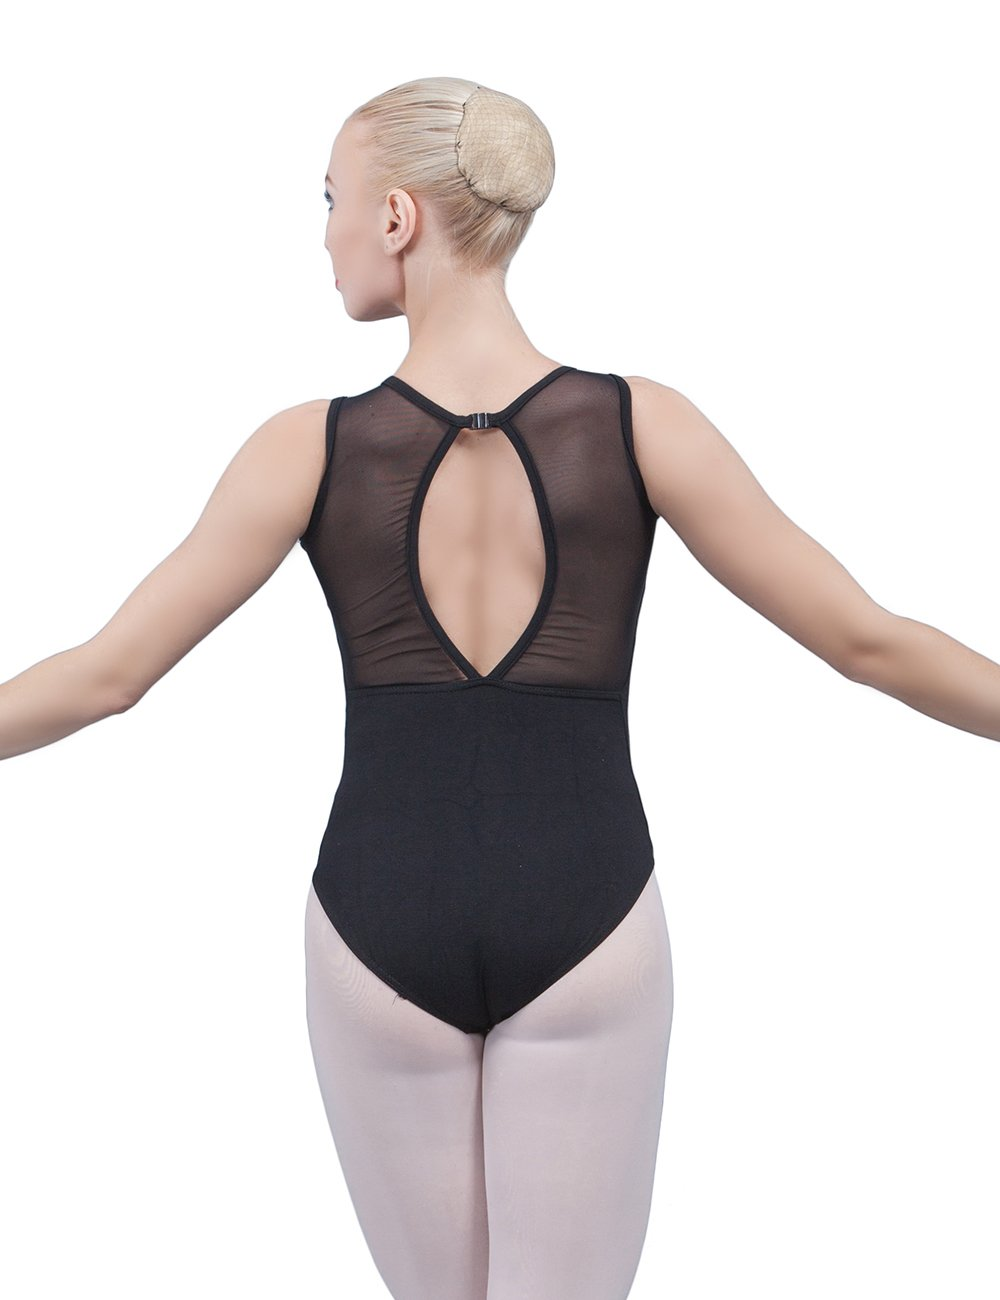 Dance Favourite Leotards Dance for Womens and Girls 01D0048 (M) by Dance Favourite